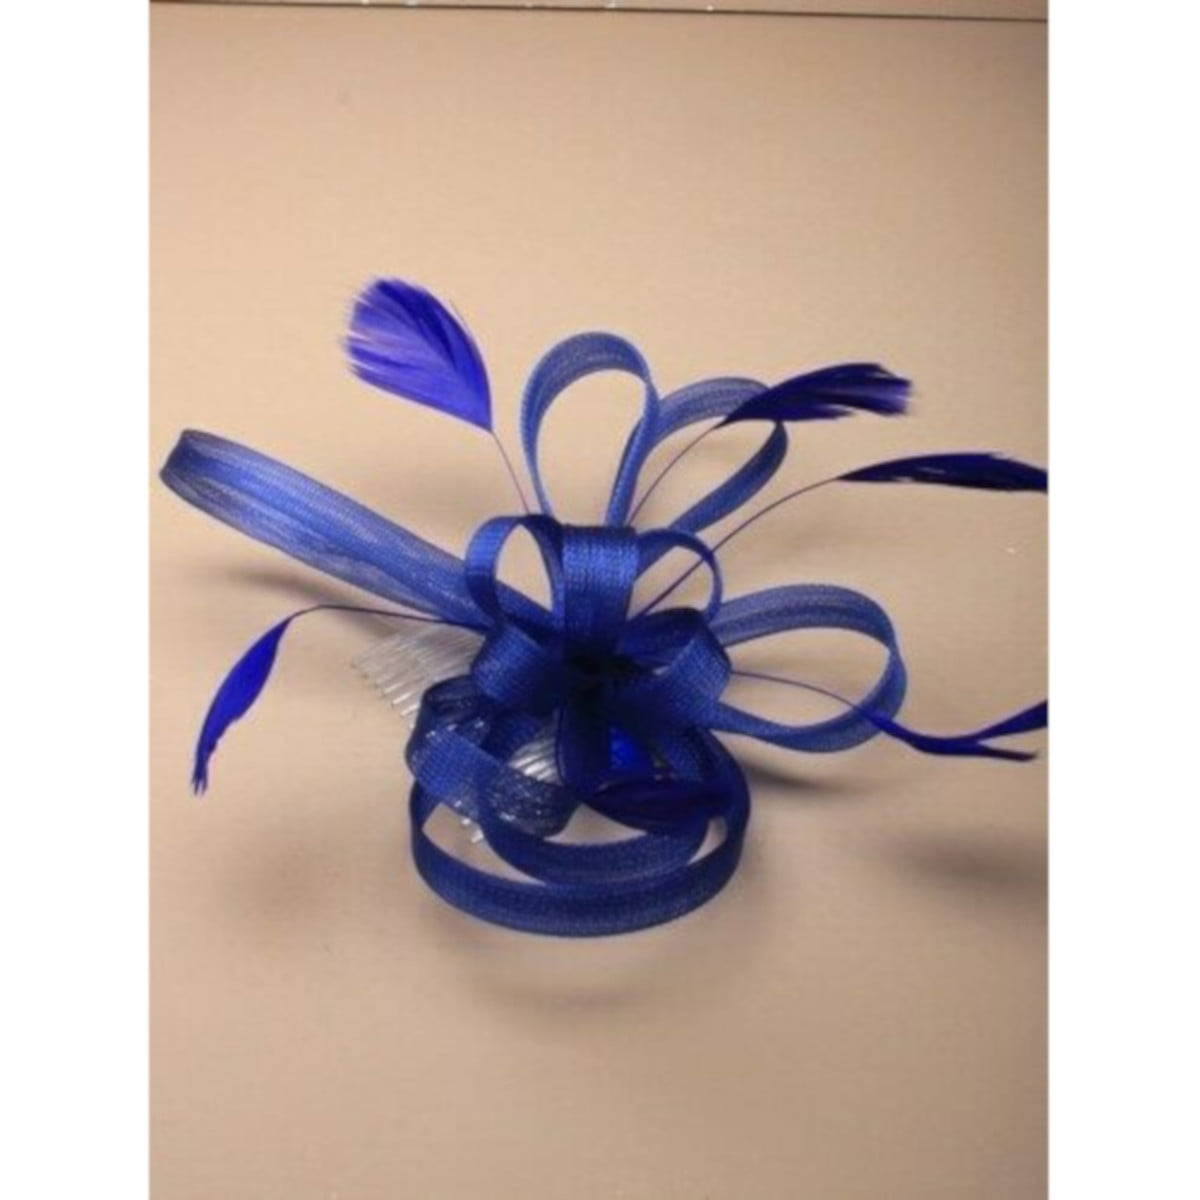 Royal blue fascinator with loops and feathers on clear comb. 2